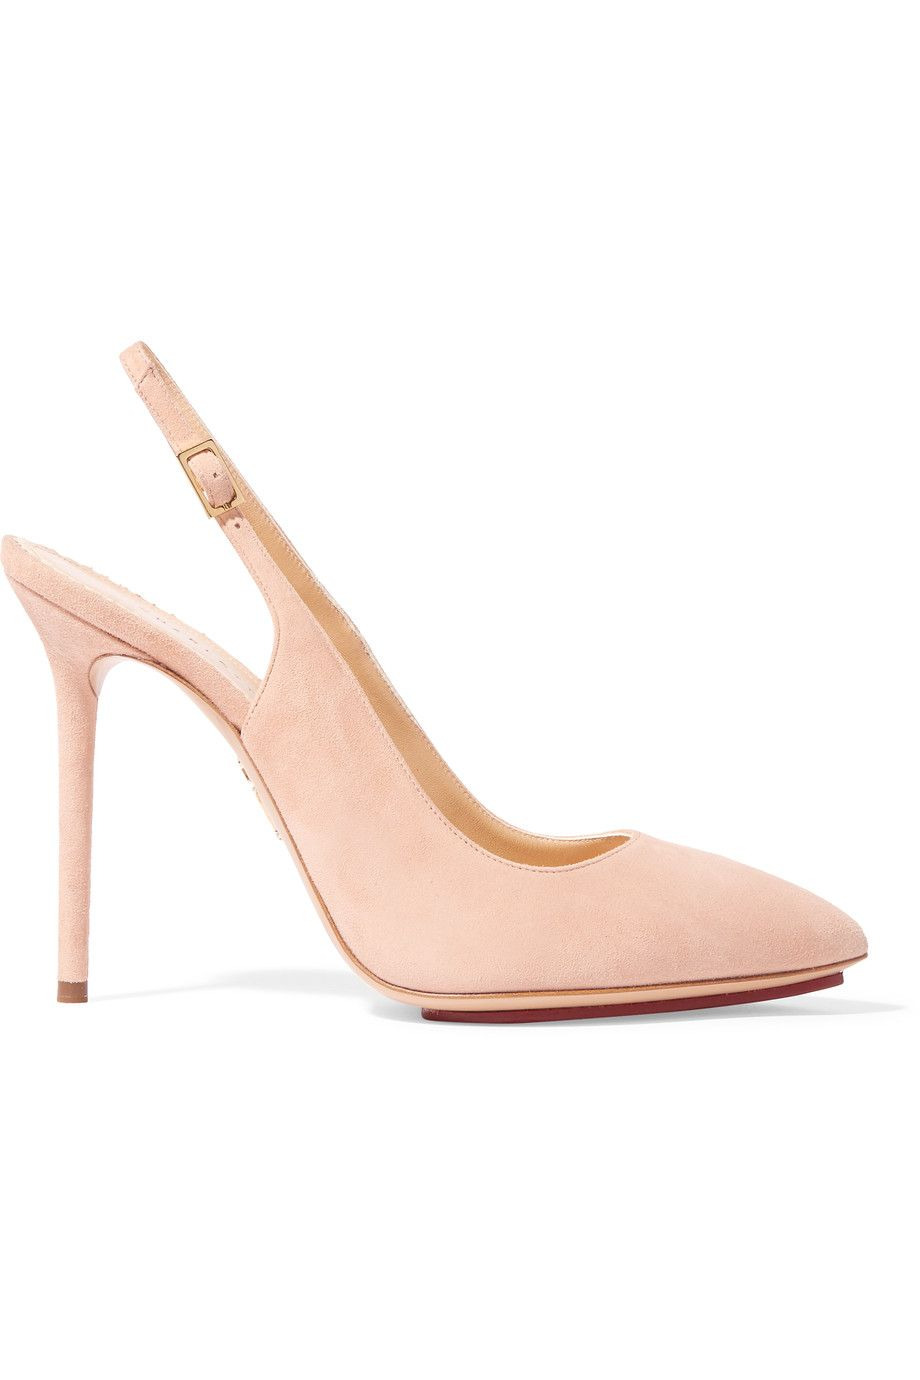 CHARLOTTE OLYMPIA Monroe Suede Slingback Pumps.  charlotteolympia  shoes   pumps a1154a328